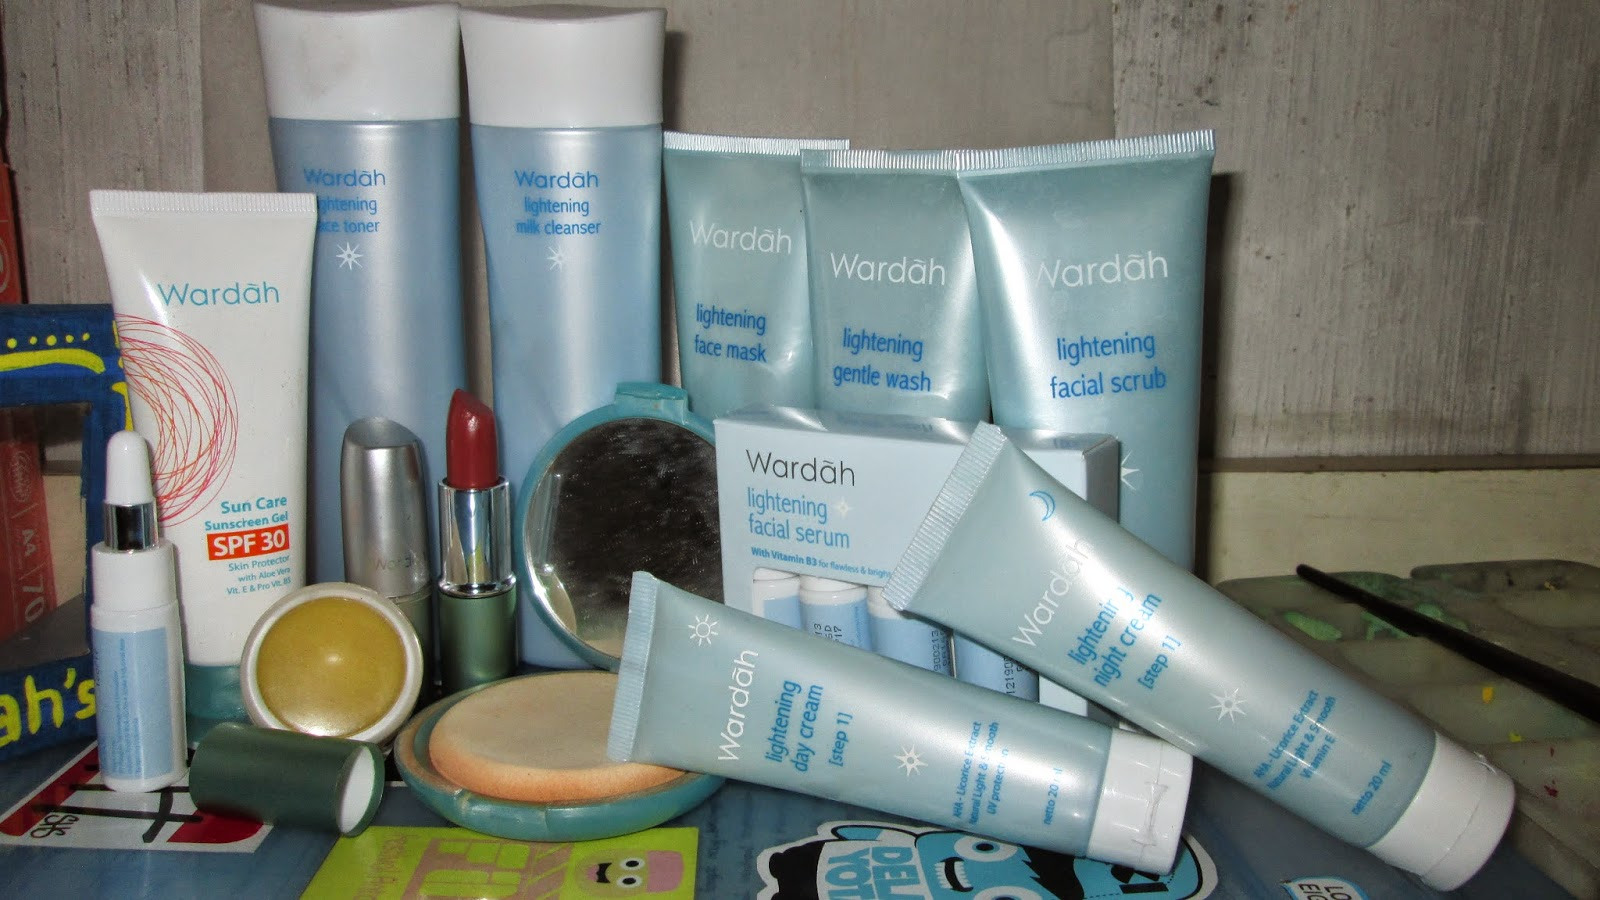 [REVIEW] Wardah Lightening Series, recommended!   SpicySugar